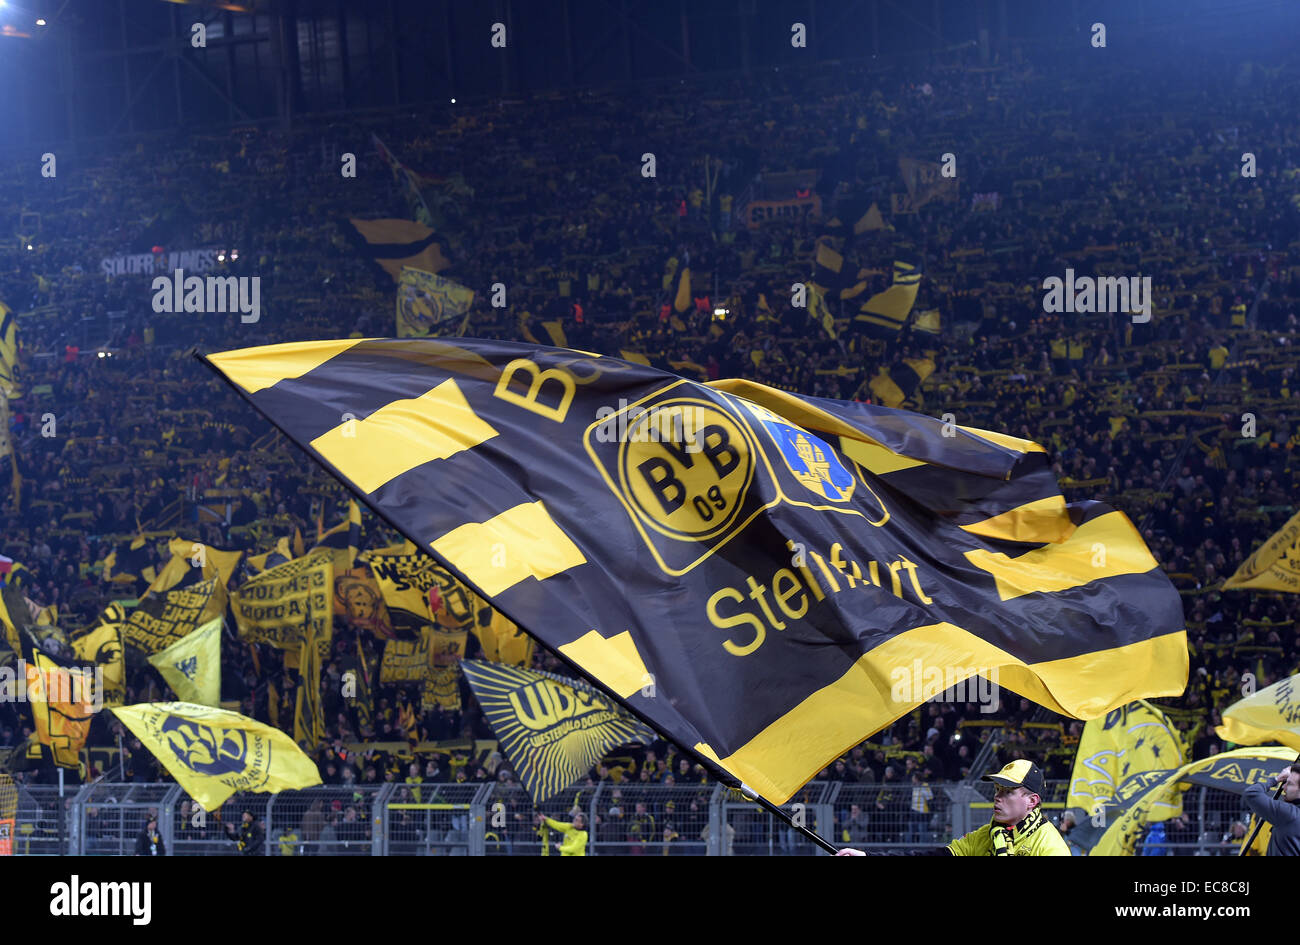 Dortmund's fans wave the flag during the Champions League Group D football match between BorussiaDortmund - Stock Image